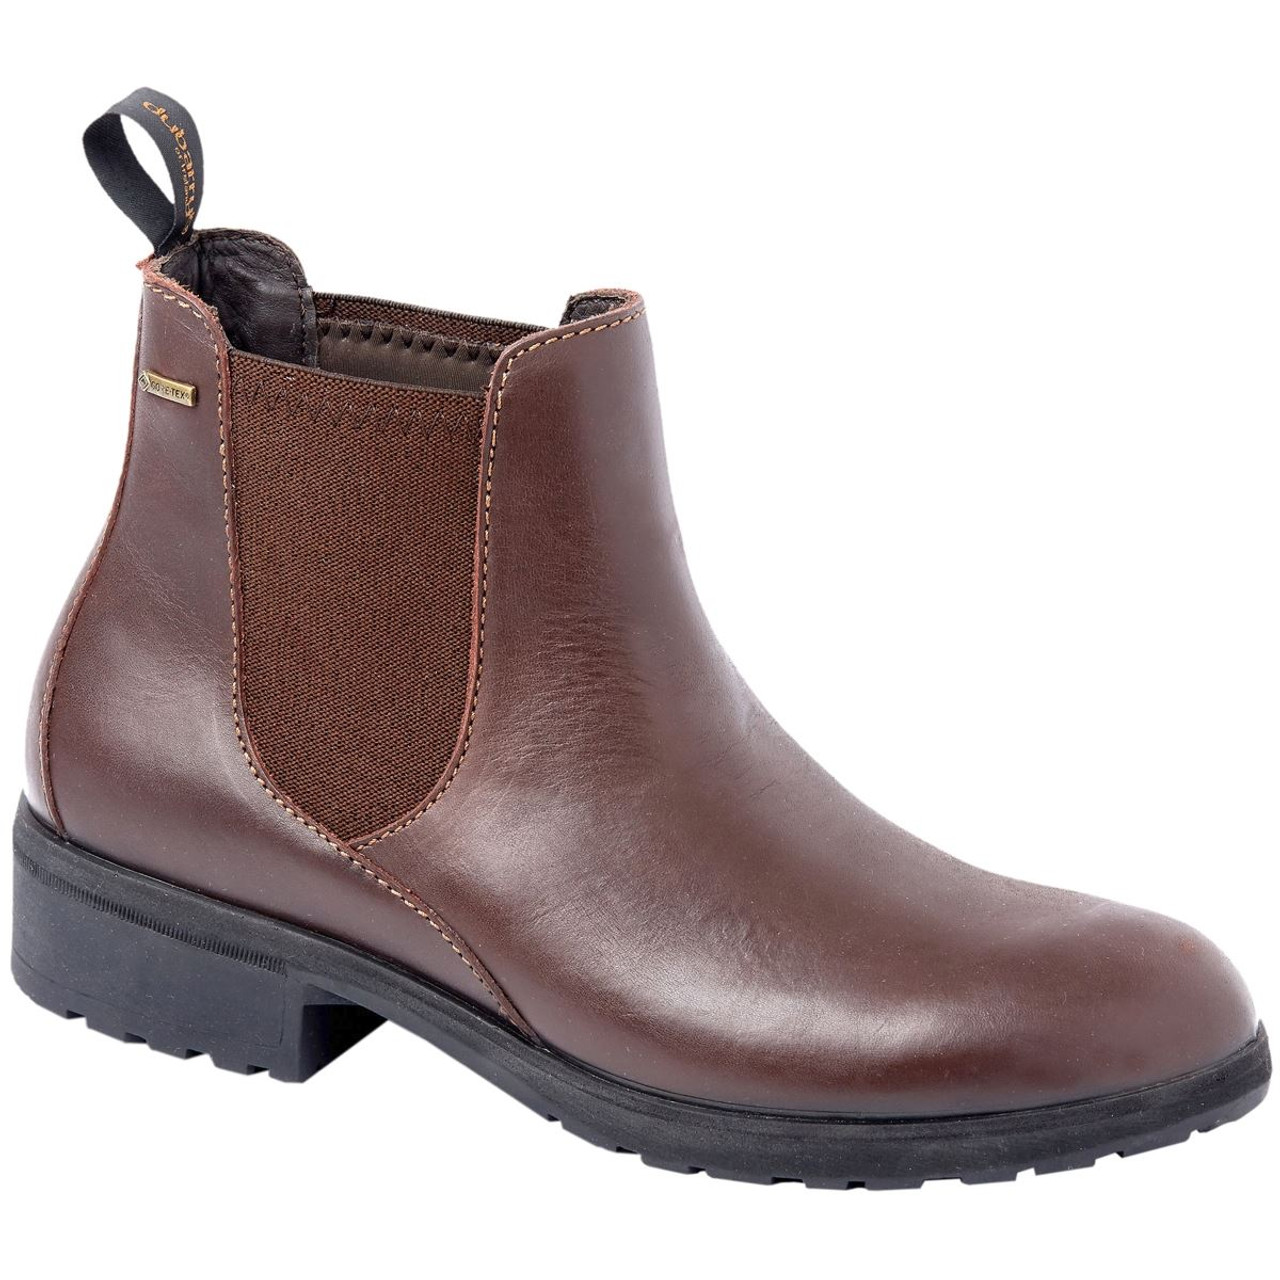 Dubarry Waterford Boots in Mahogany